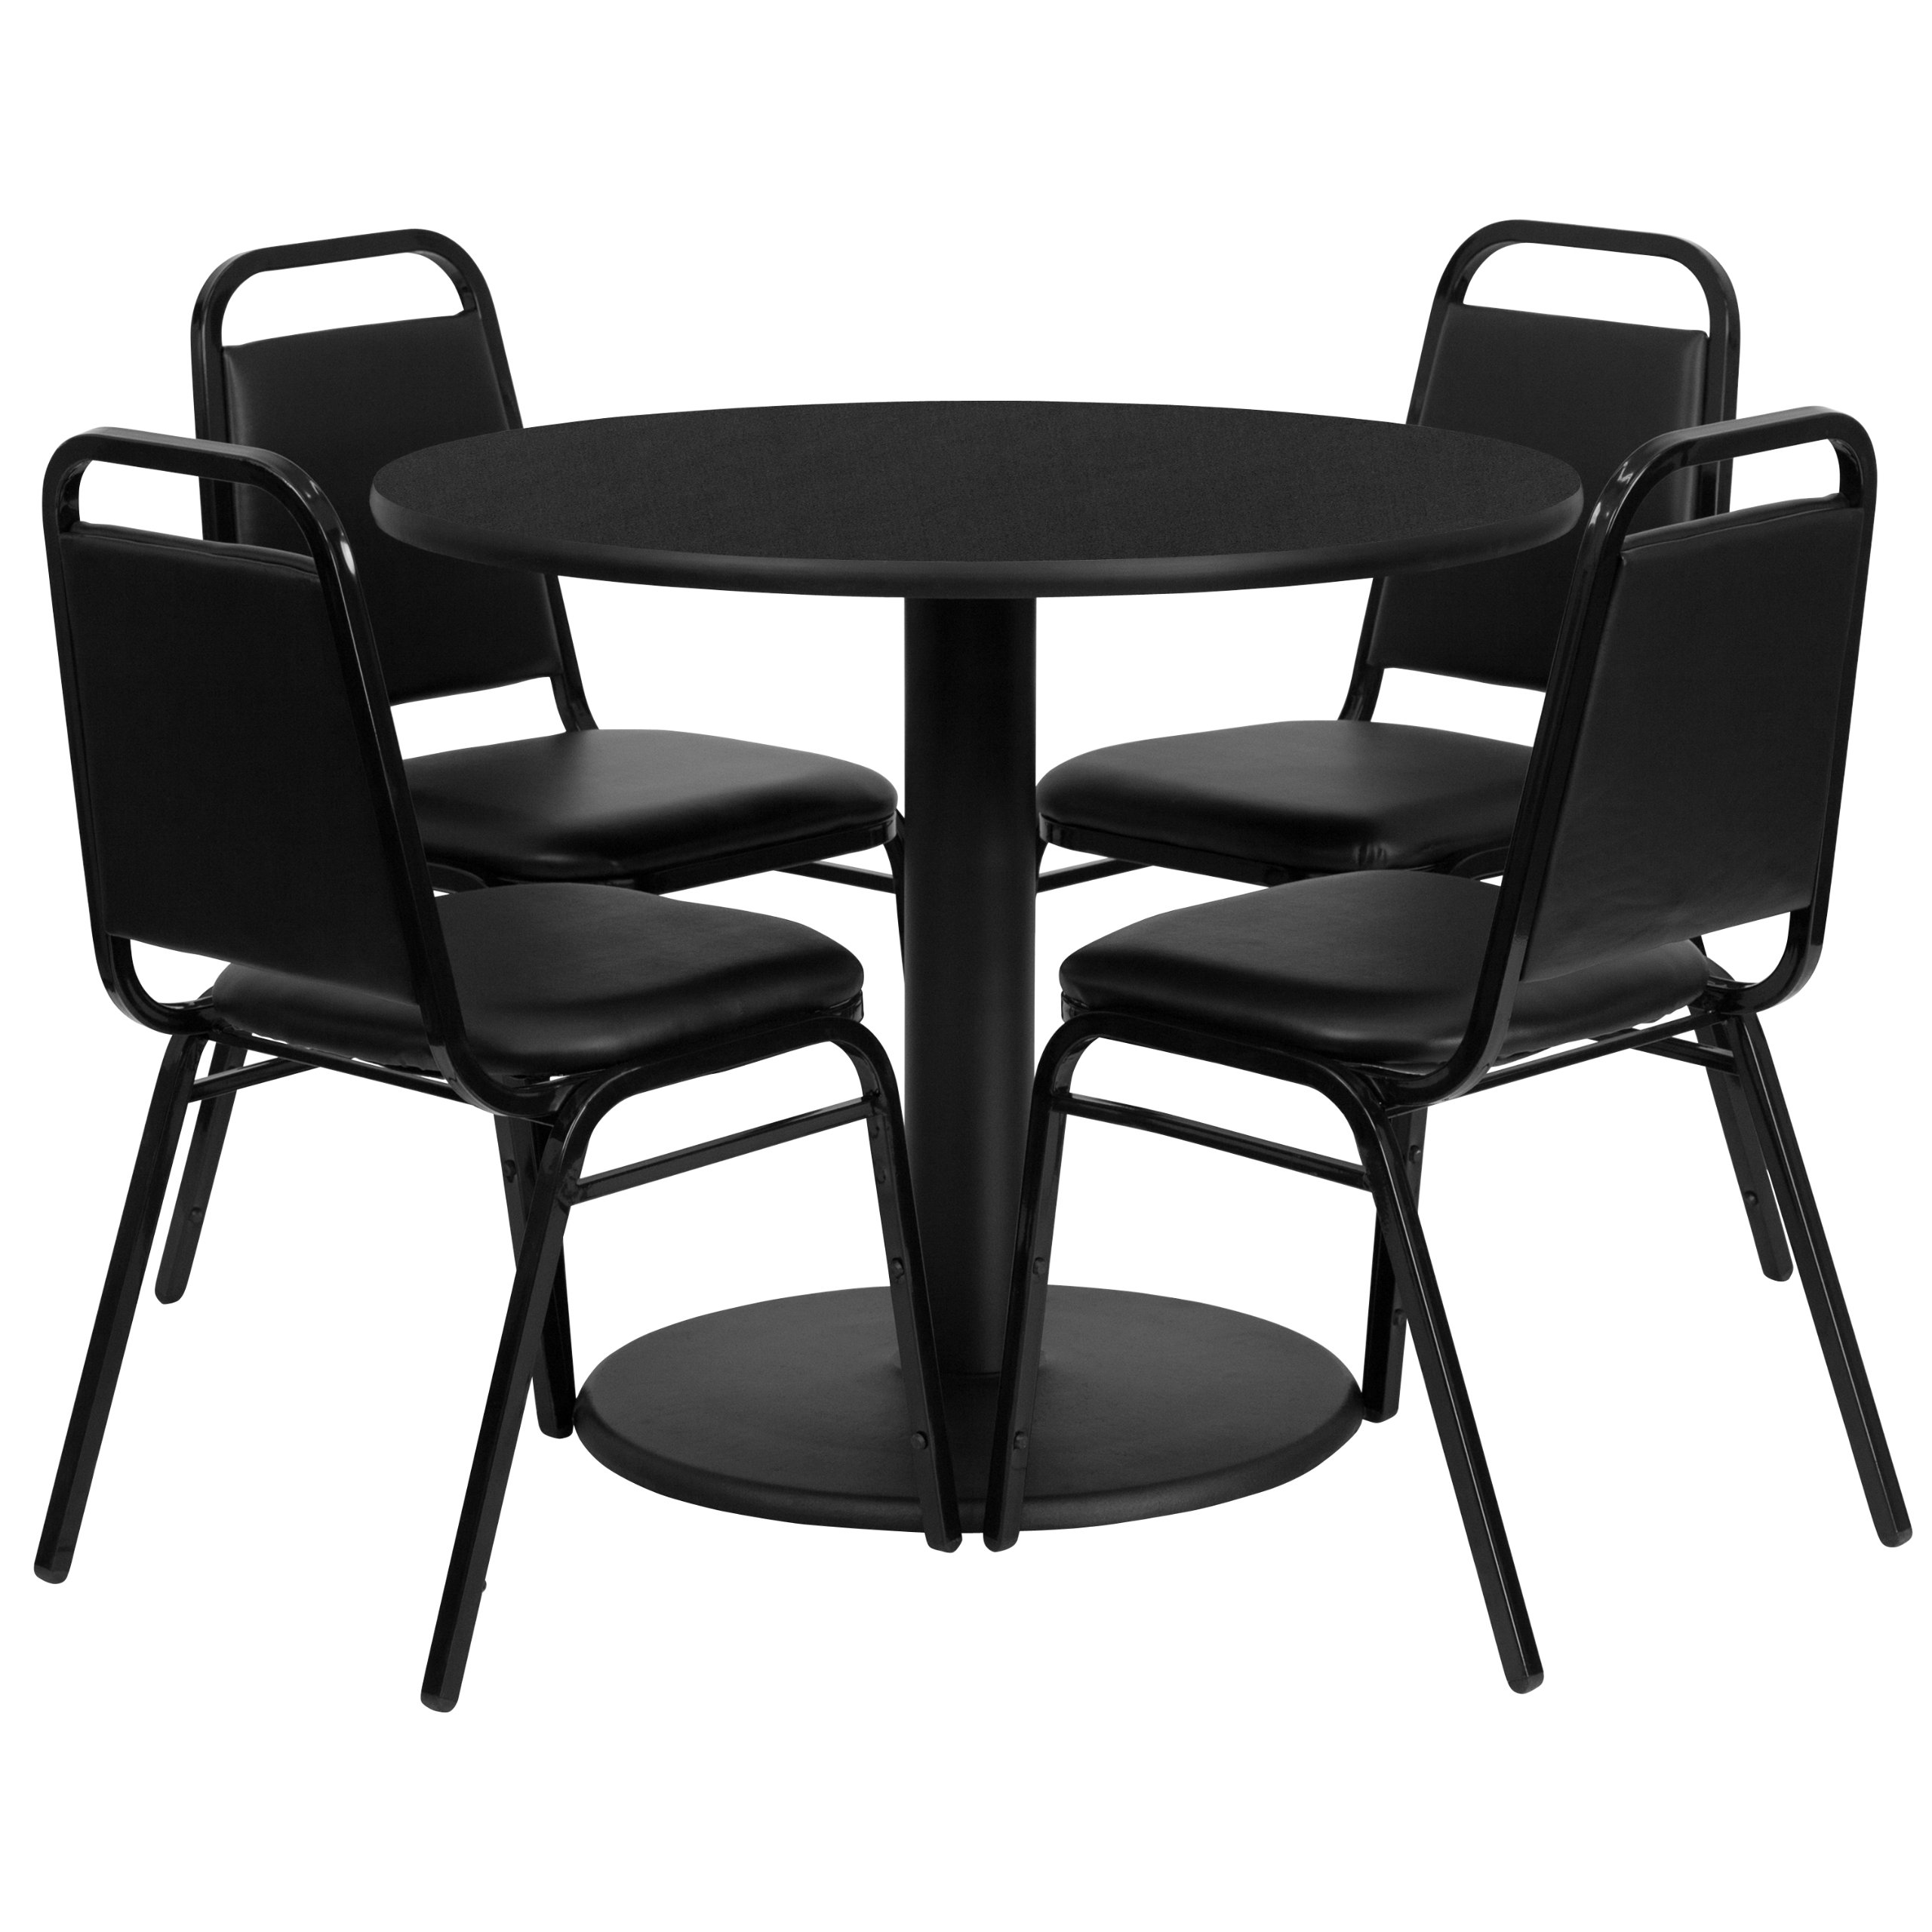 Flash Furniture 36'' Round Black Laminate Table Set with 4 Black Trapezoidal Back Banquet Chairs by Flash Furniture (Image #1)